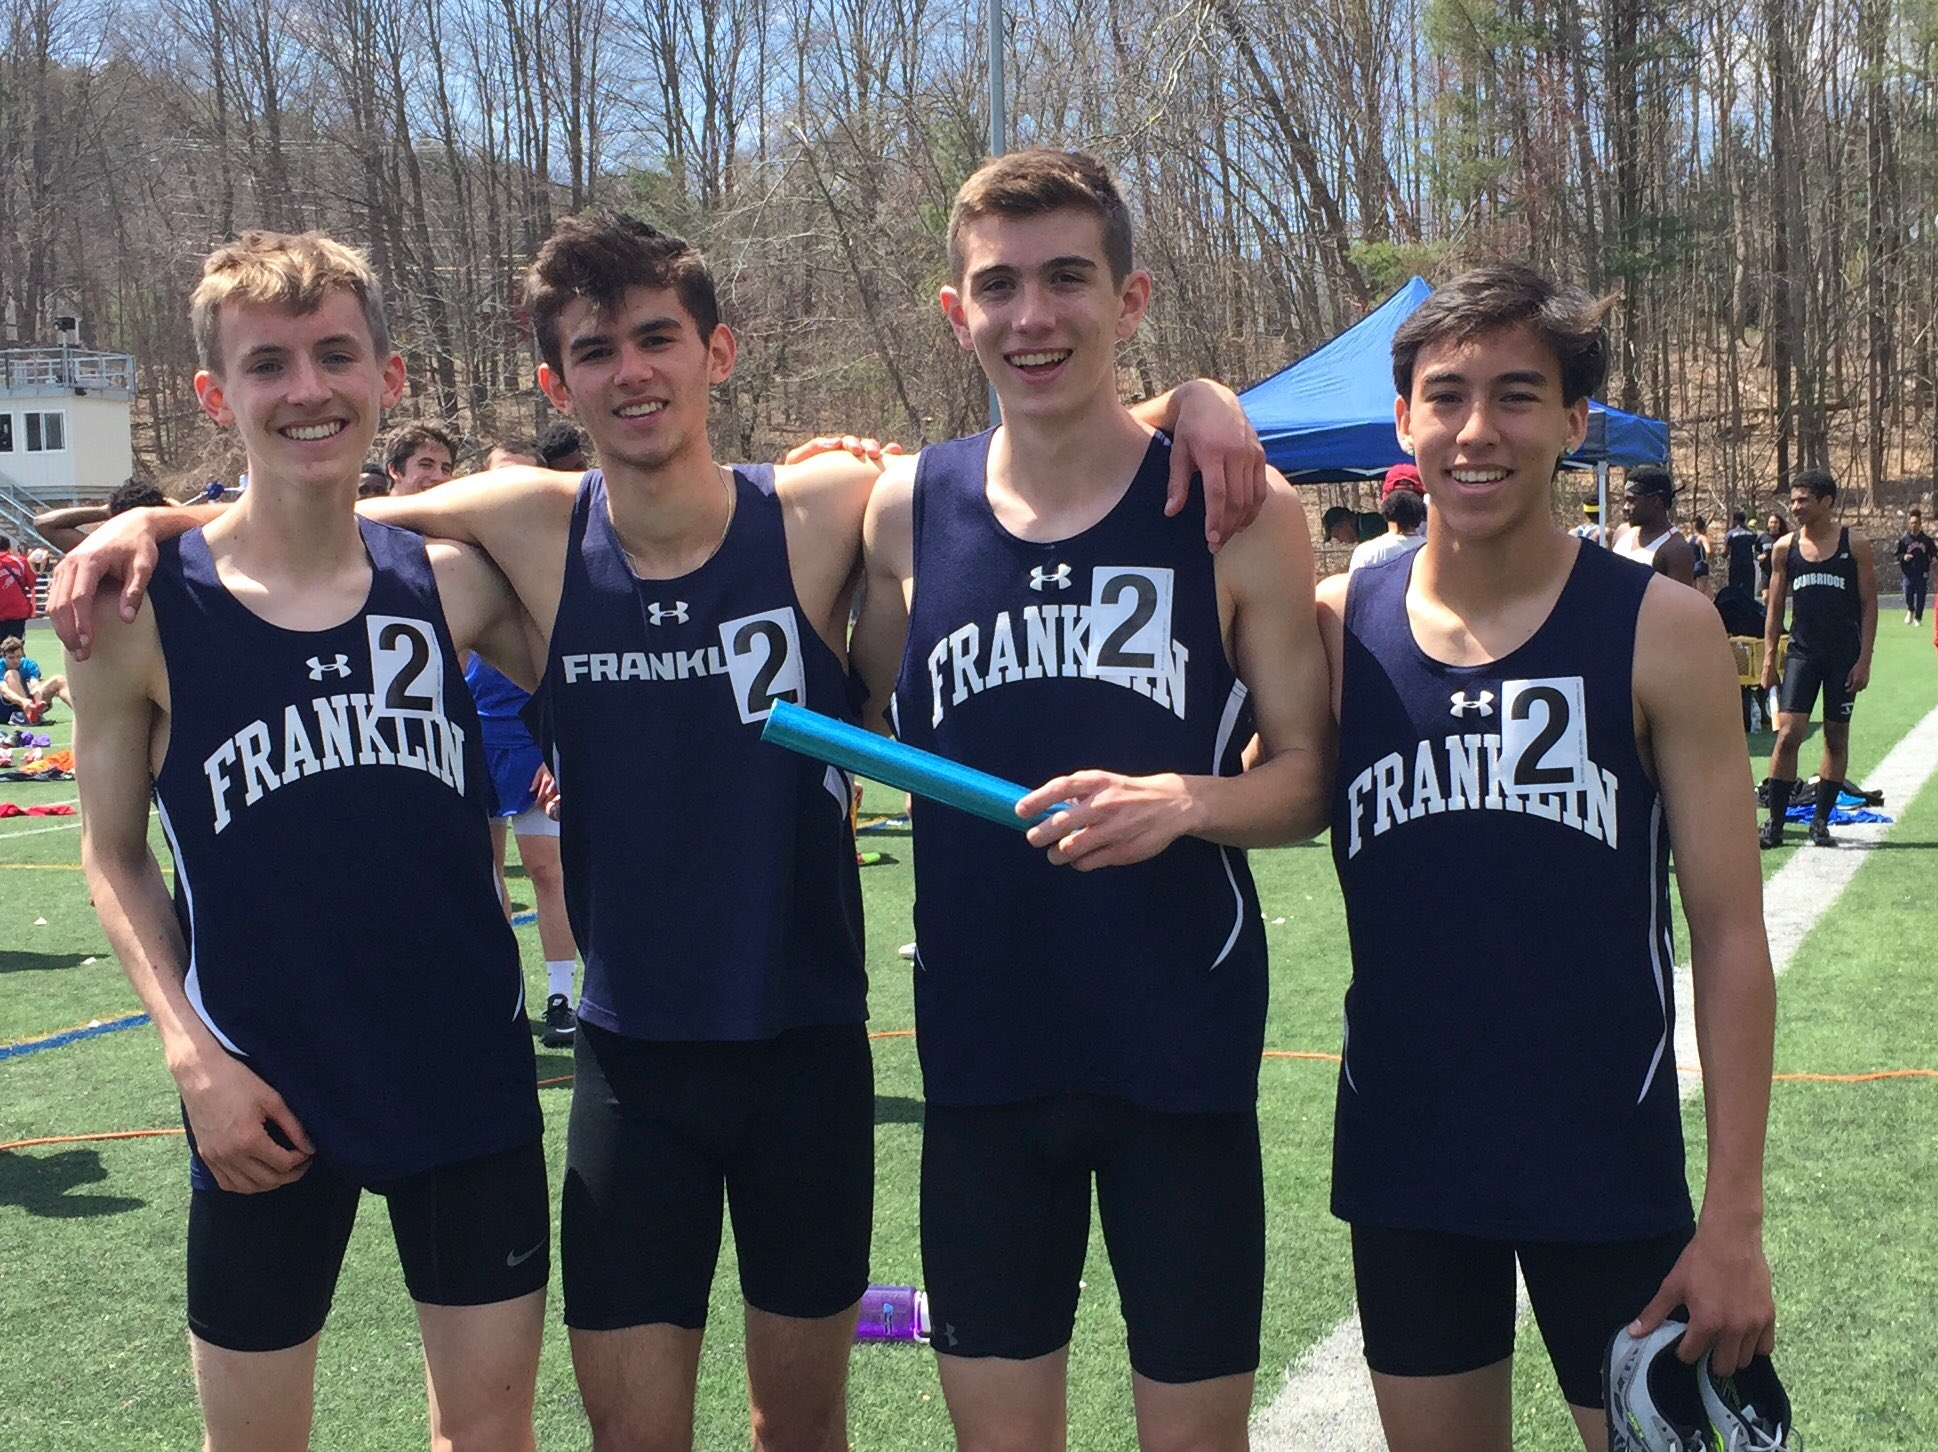 Boys 4x800 takes first at the MSCTA state relays! All four ran a PR with a 8:08 total time